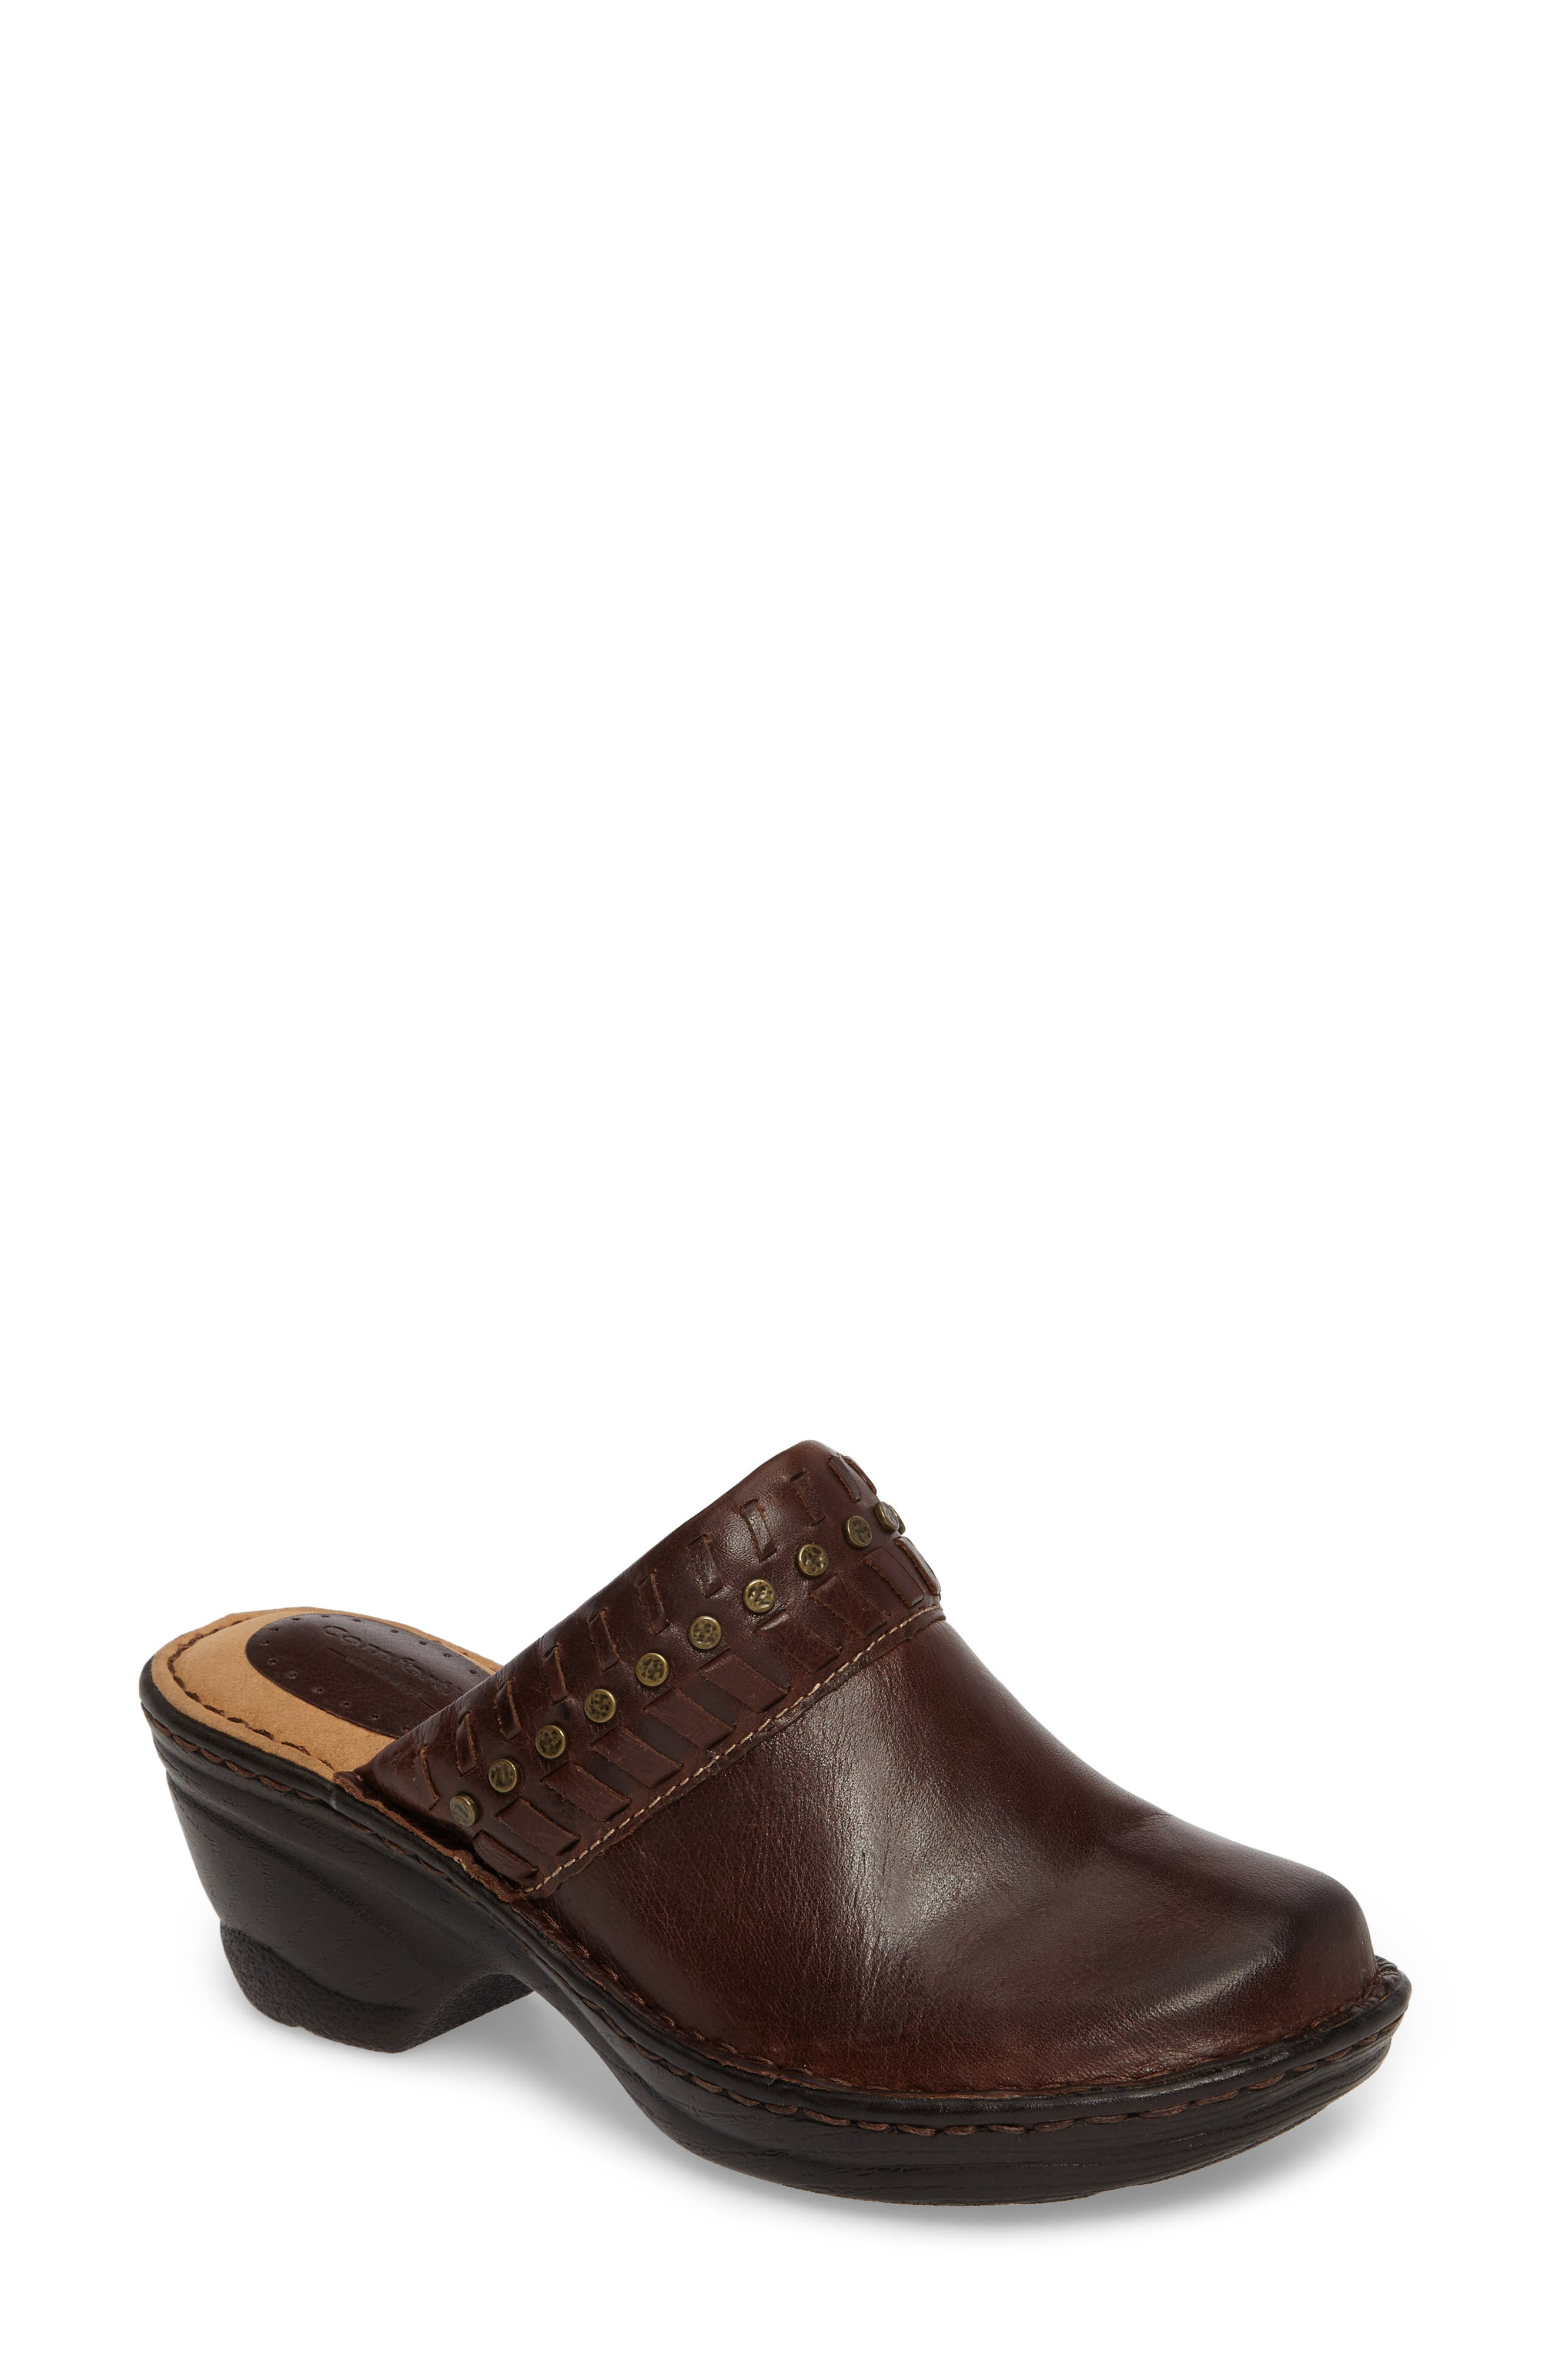 Lorain Clog,                         Main,                         color, Bridle Brown Leather